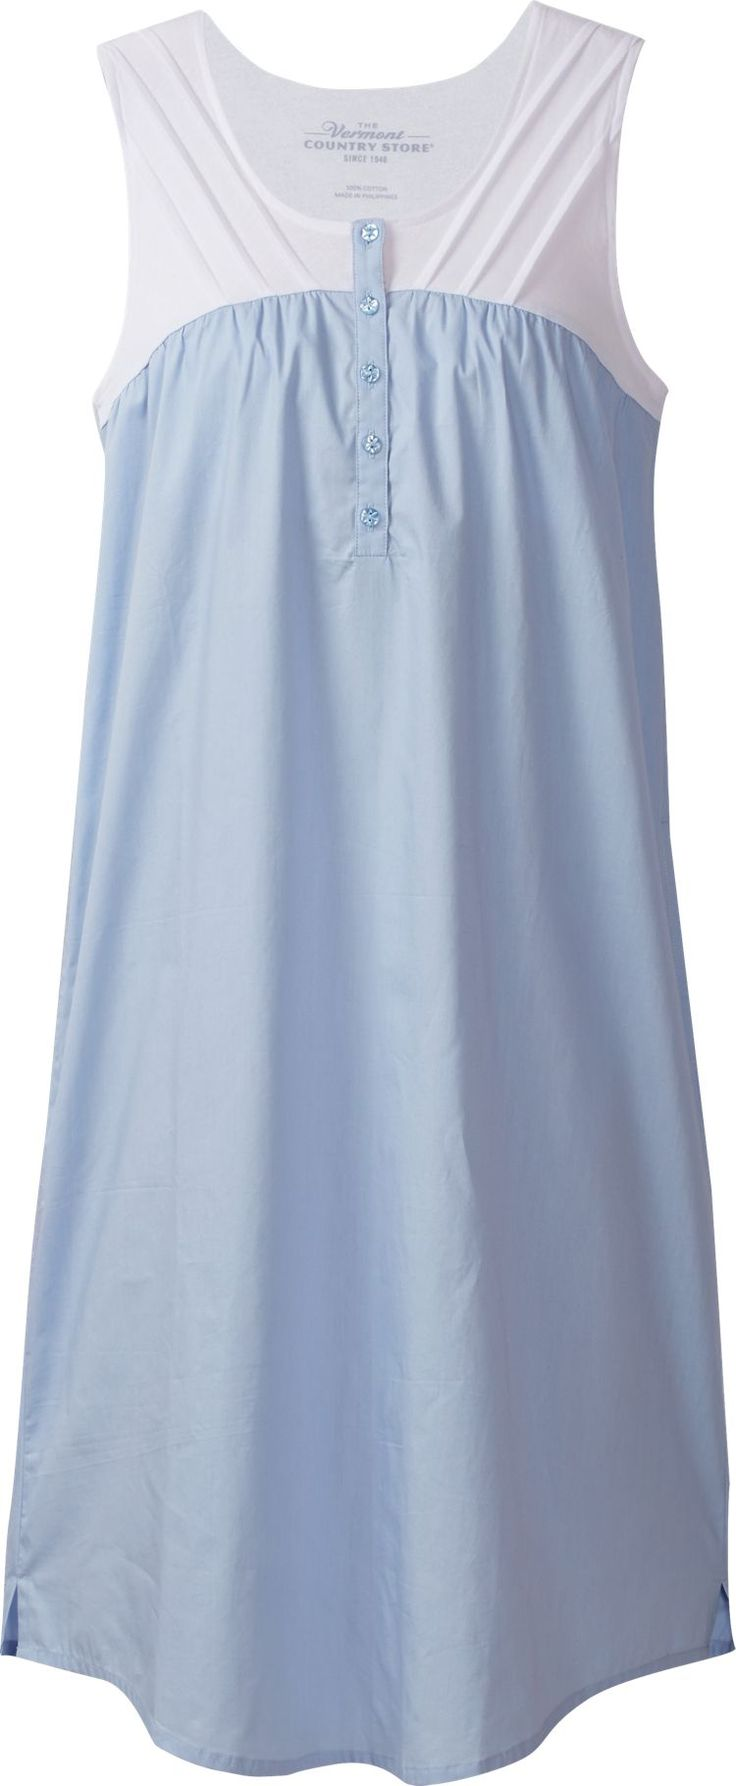 Broadcloth and Knit Nightgown: For women who love both the stretchy comfort of knit and cool crispness of broadcloth, this 100% cotton nightgown is a win-win.